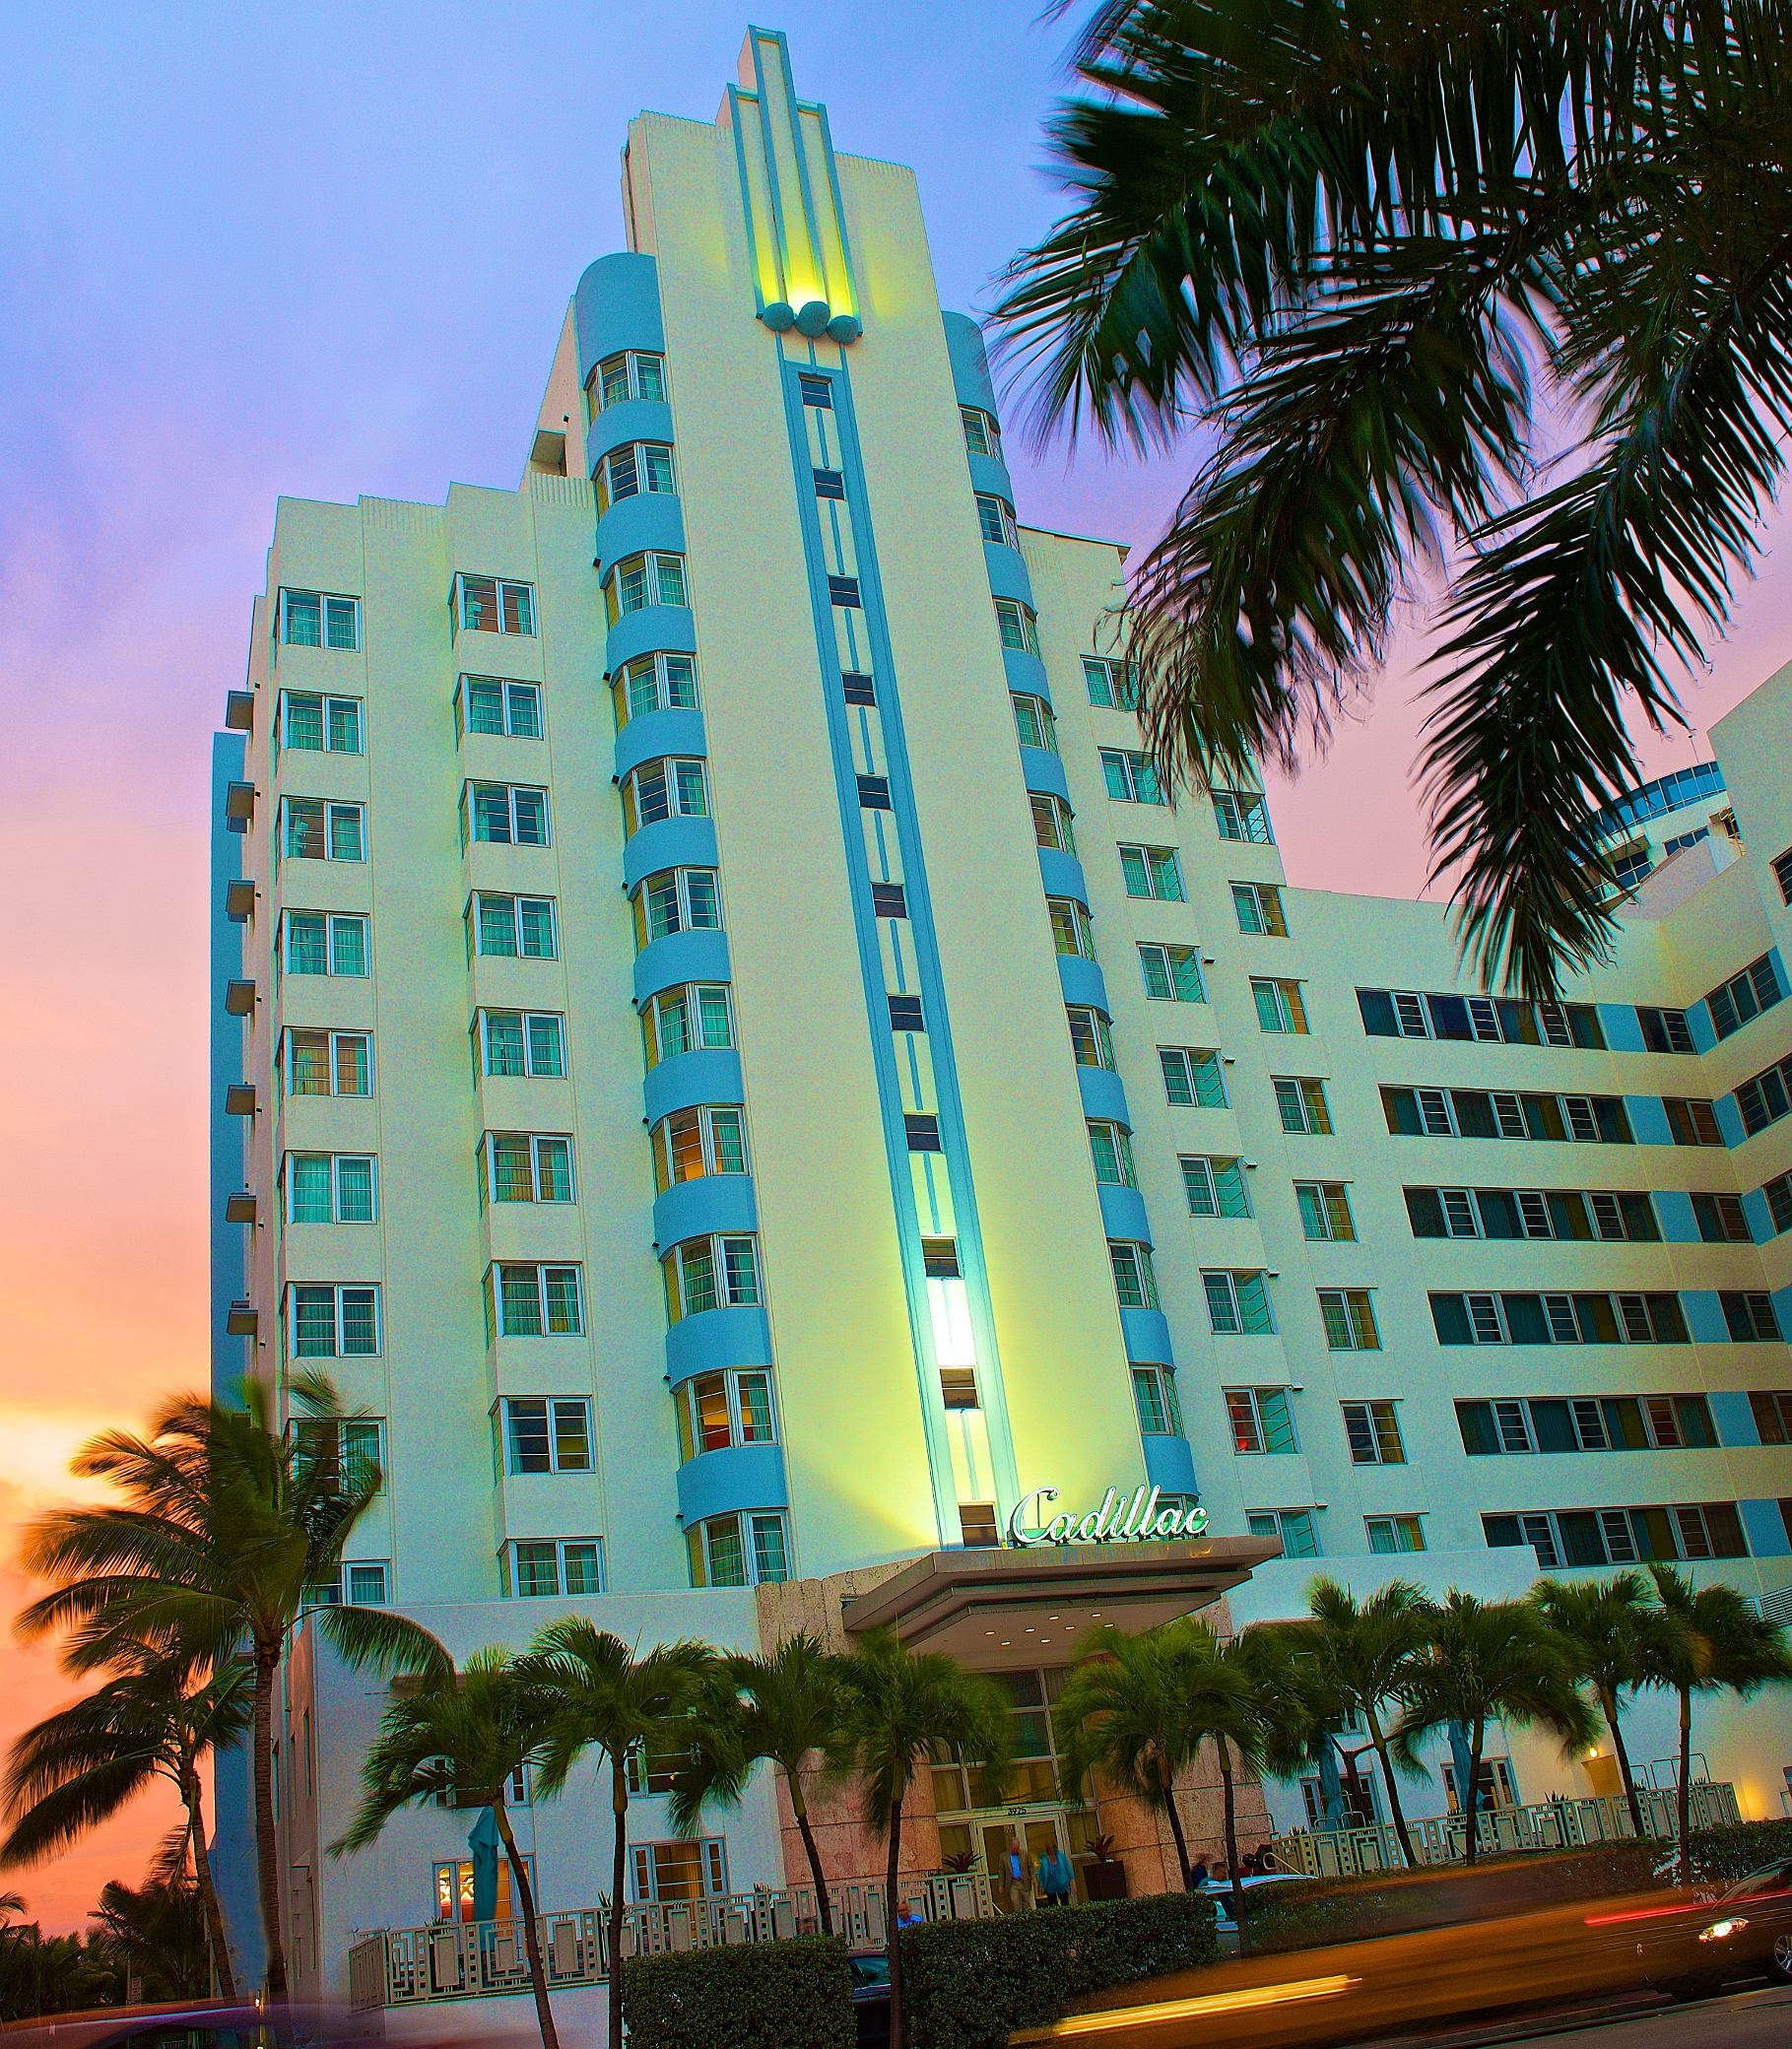 Cadillac Hotels Michigan: Courtyard By Marriott Cadillac Miami Beach/Oceanfront